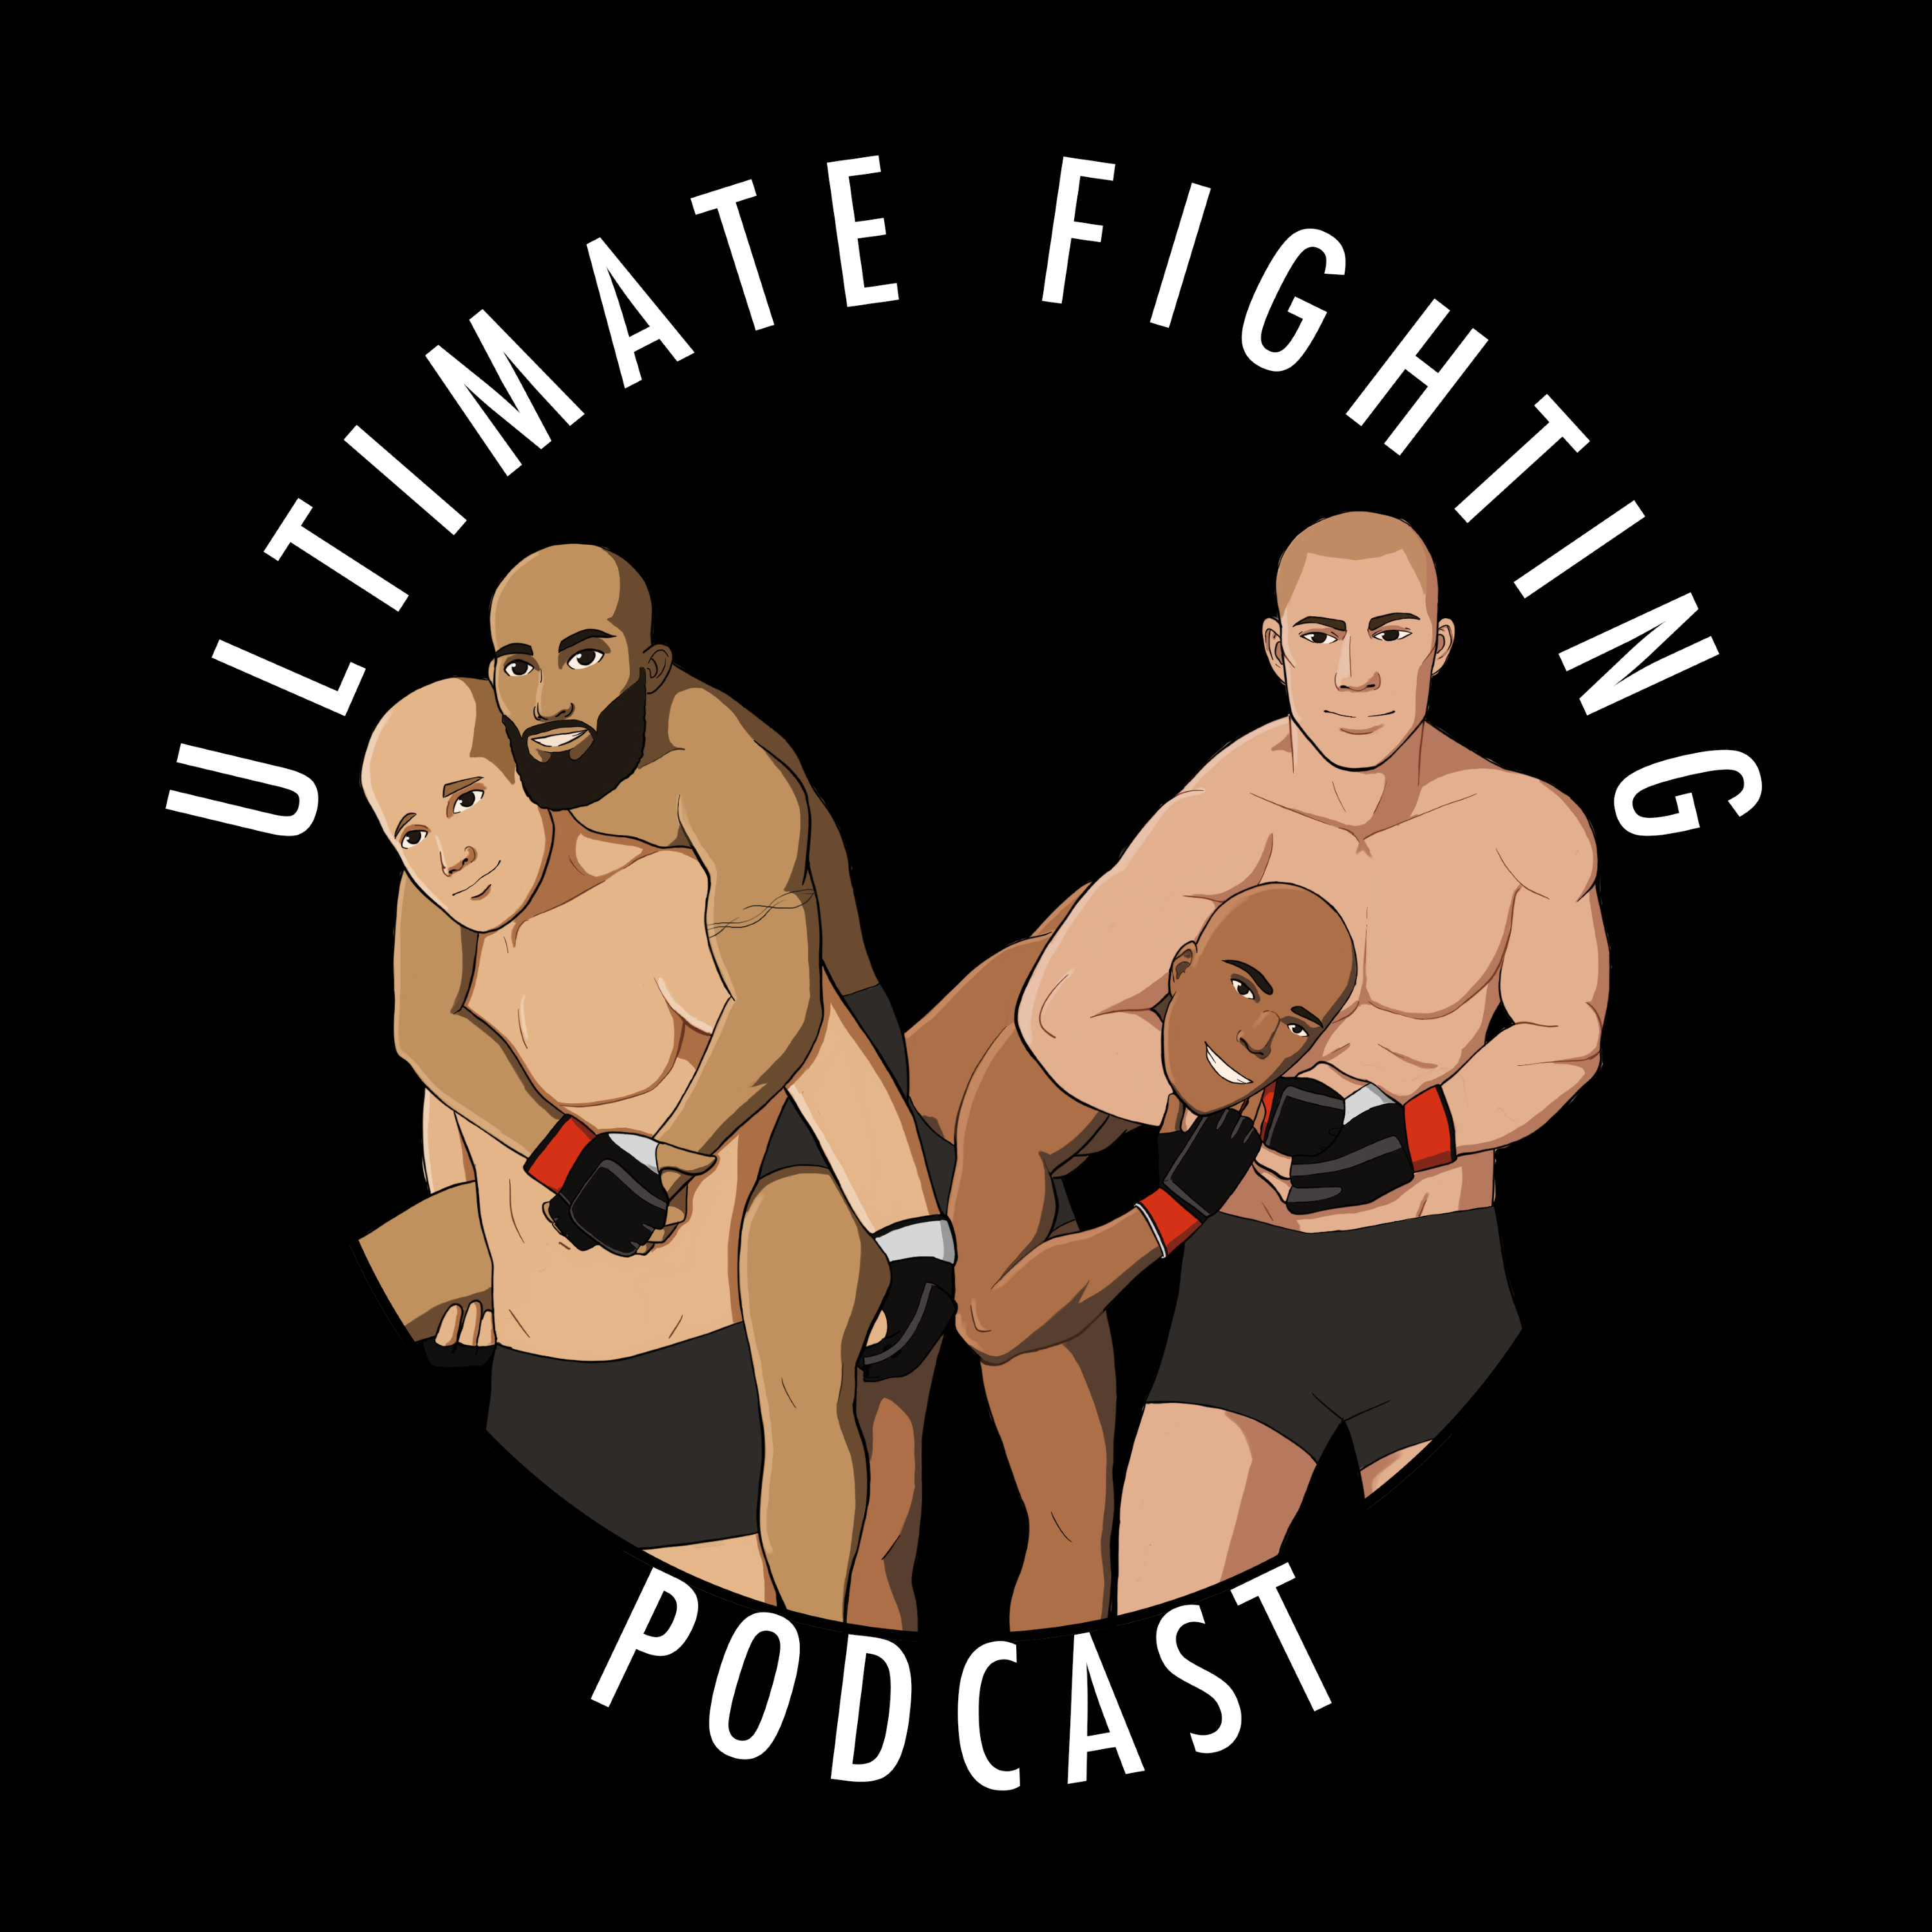 Ultimate Fighting Podcast